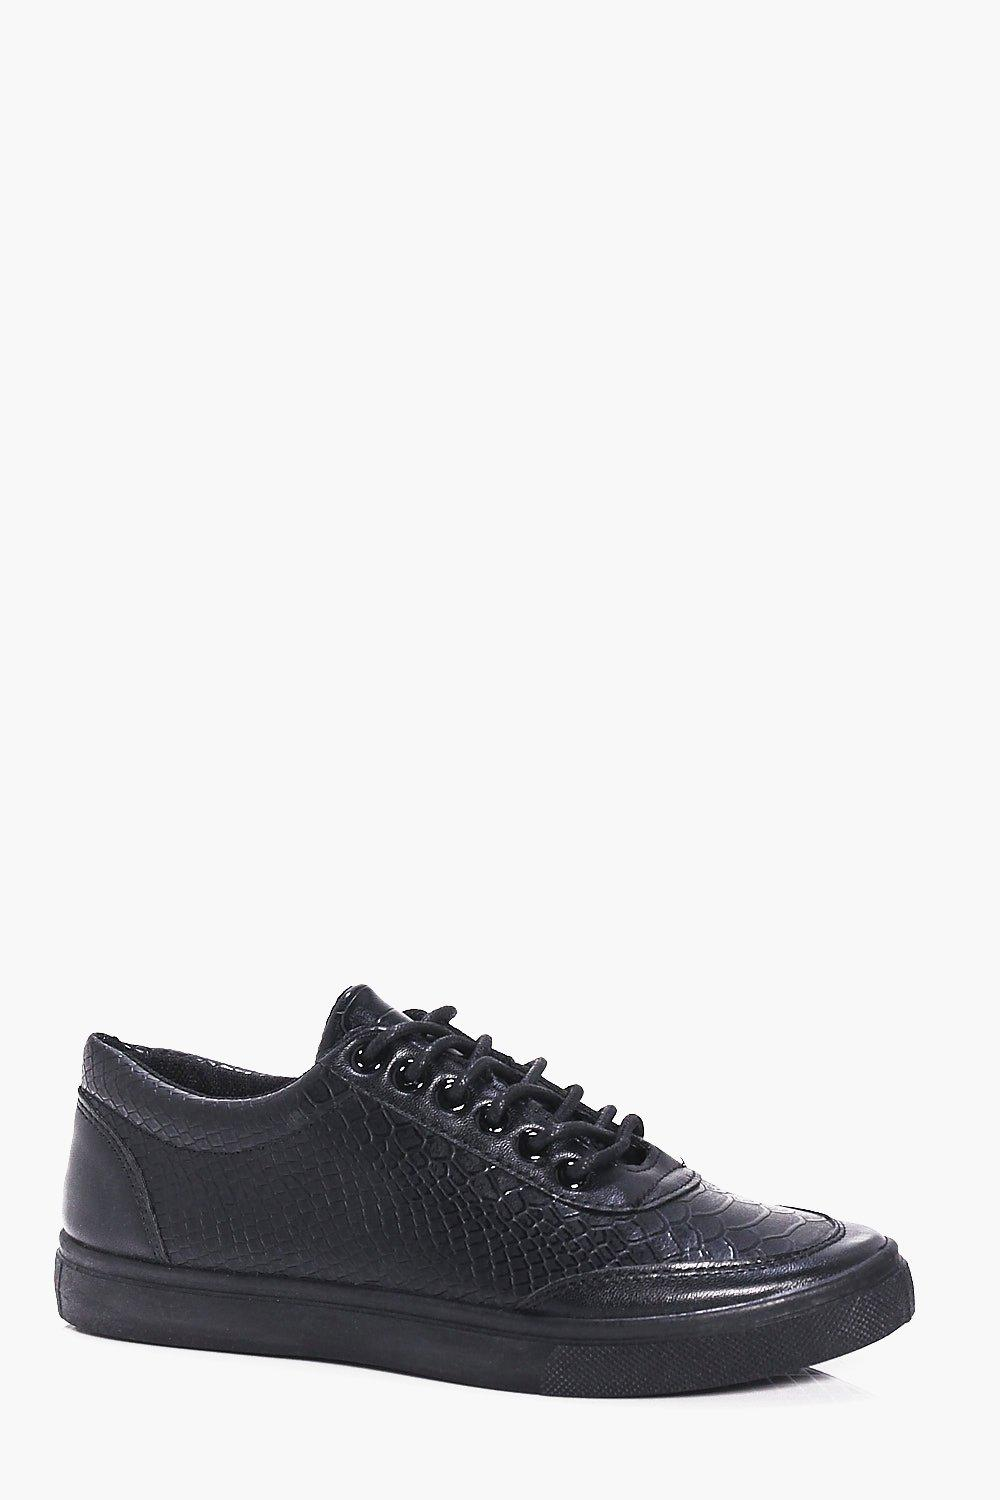 Croc PU Smart Lace Up Shoes